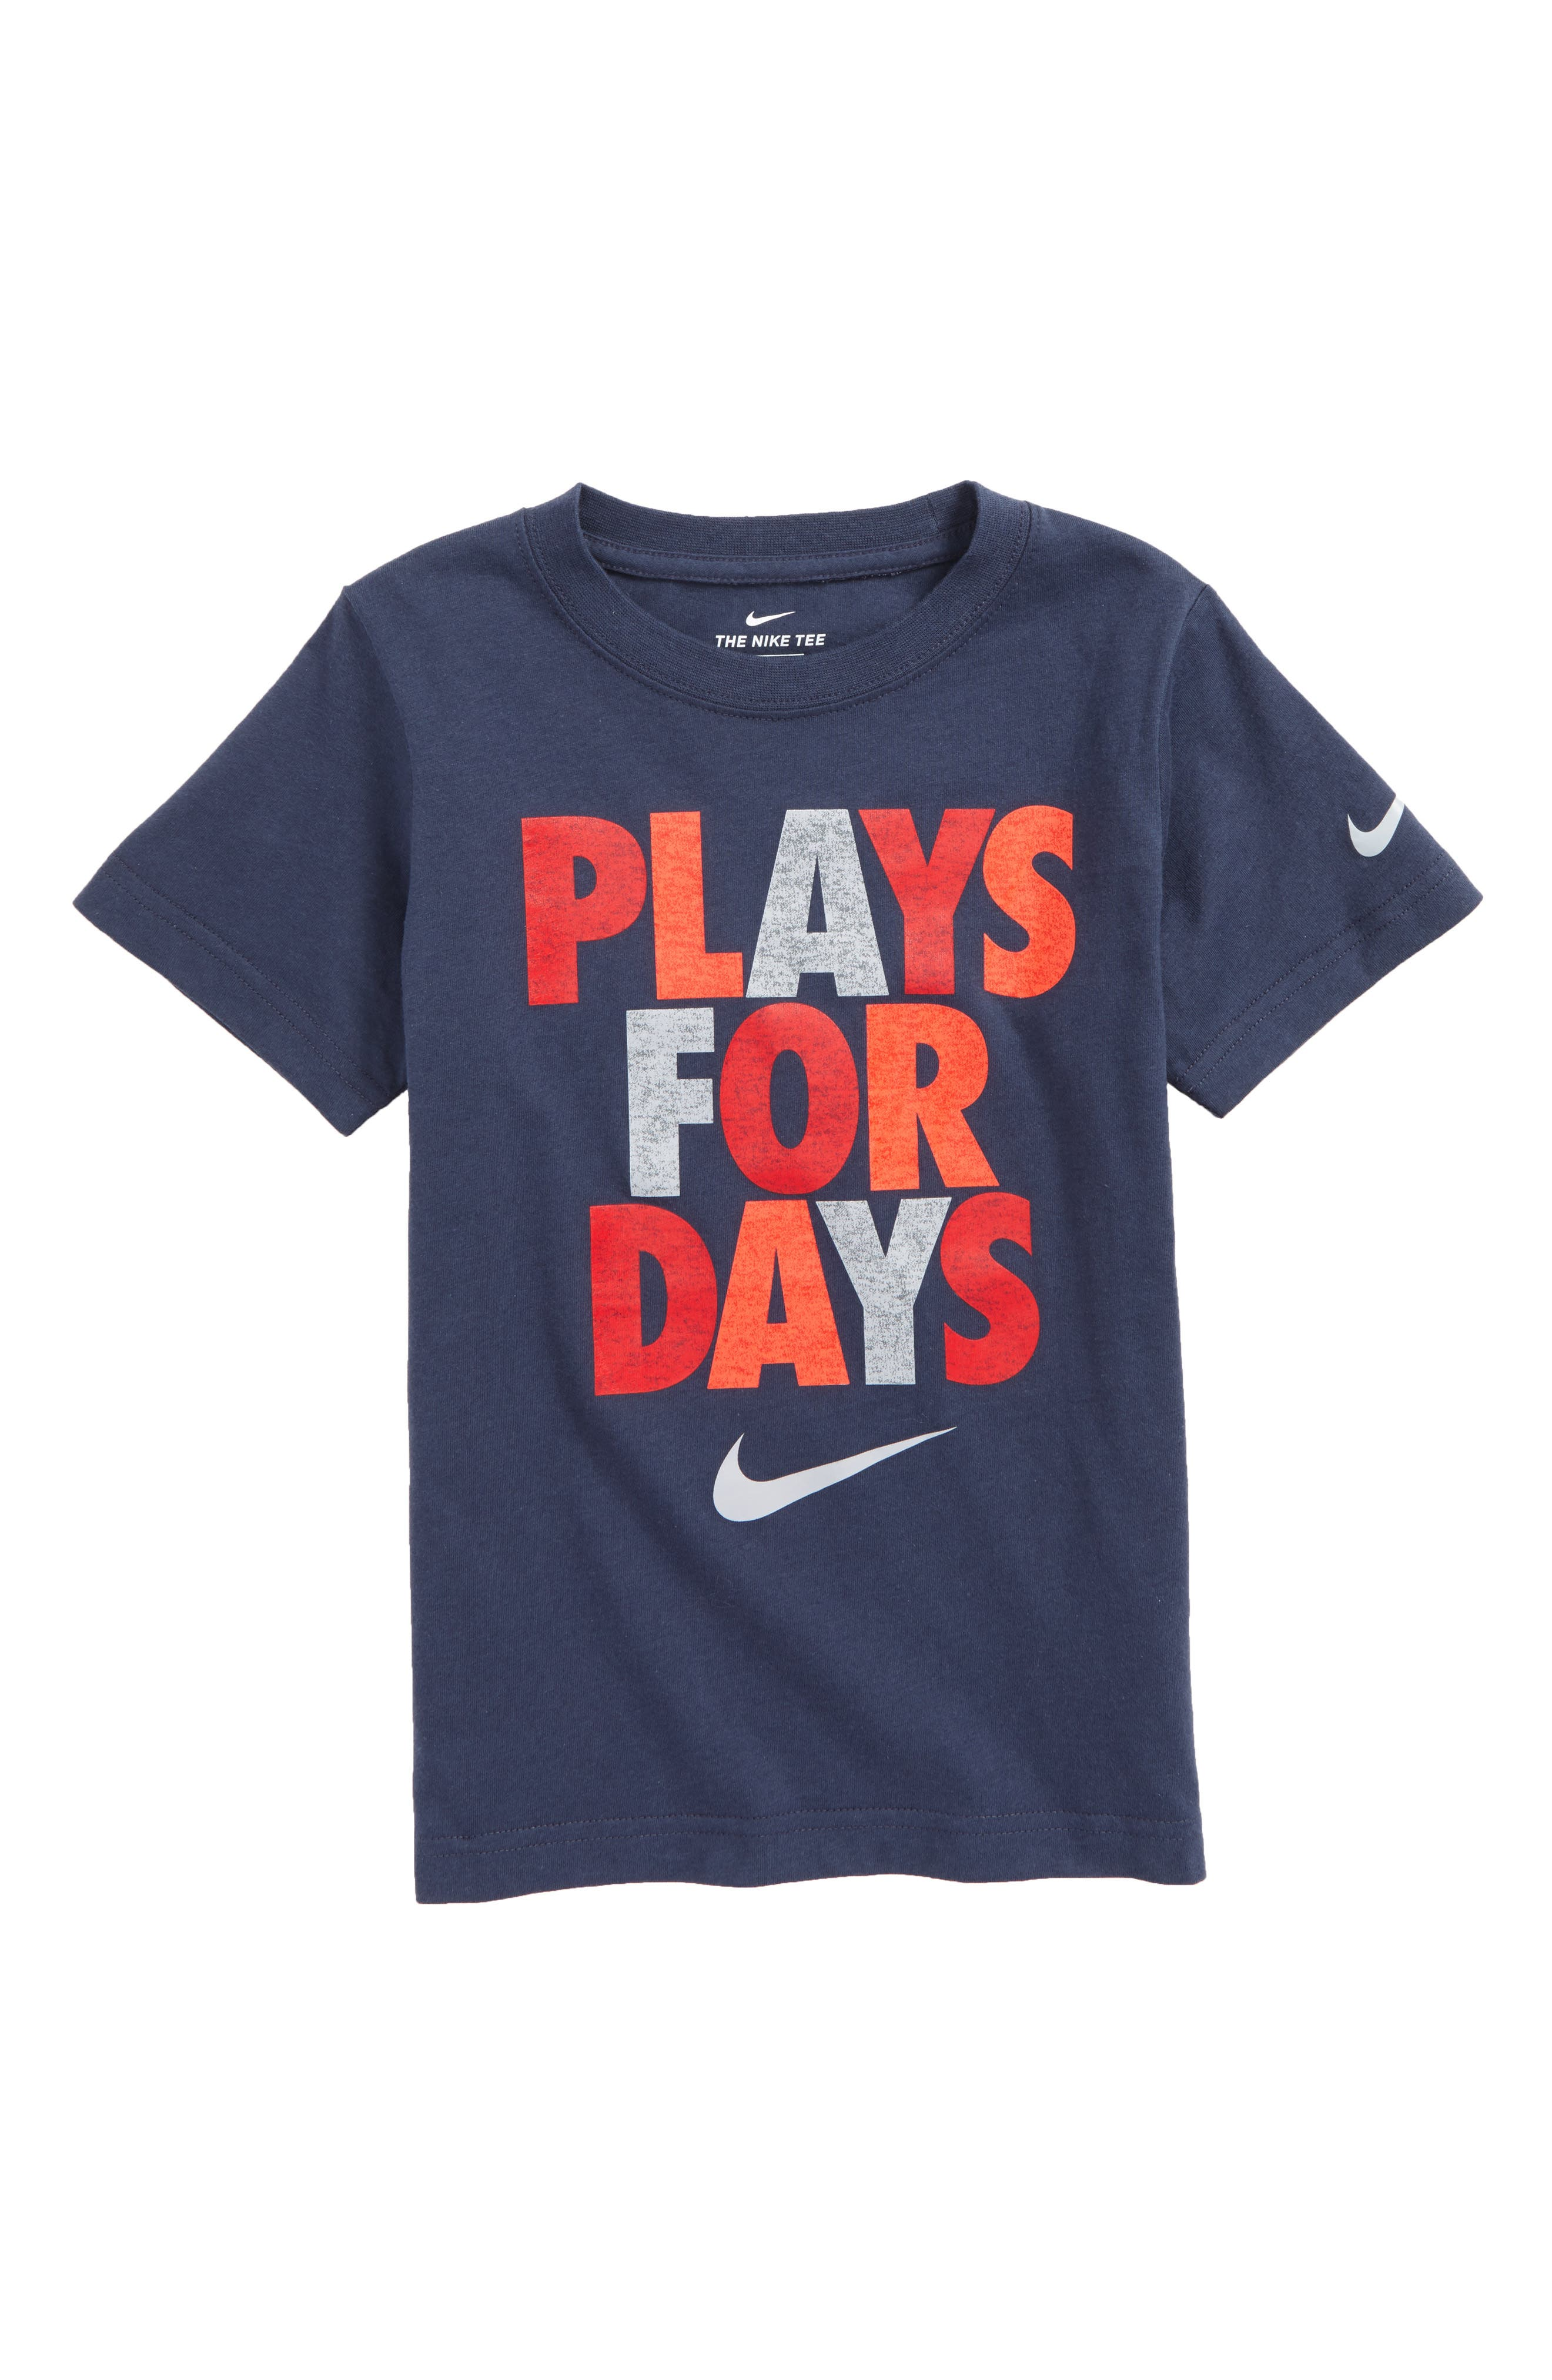 Plays for Days Graphic T-Shirt,                             Main thumbnail 1, color,                             411